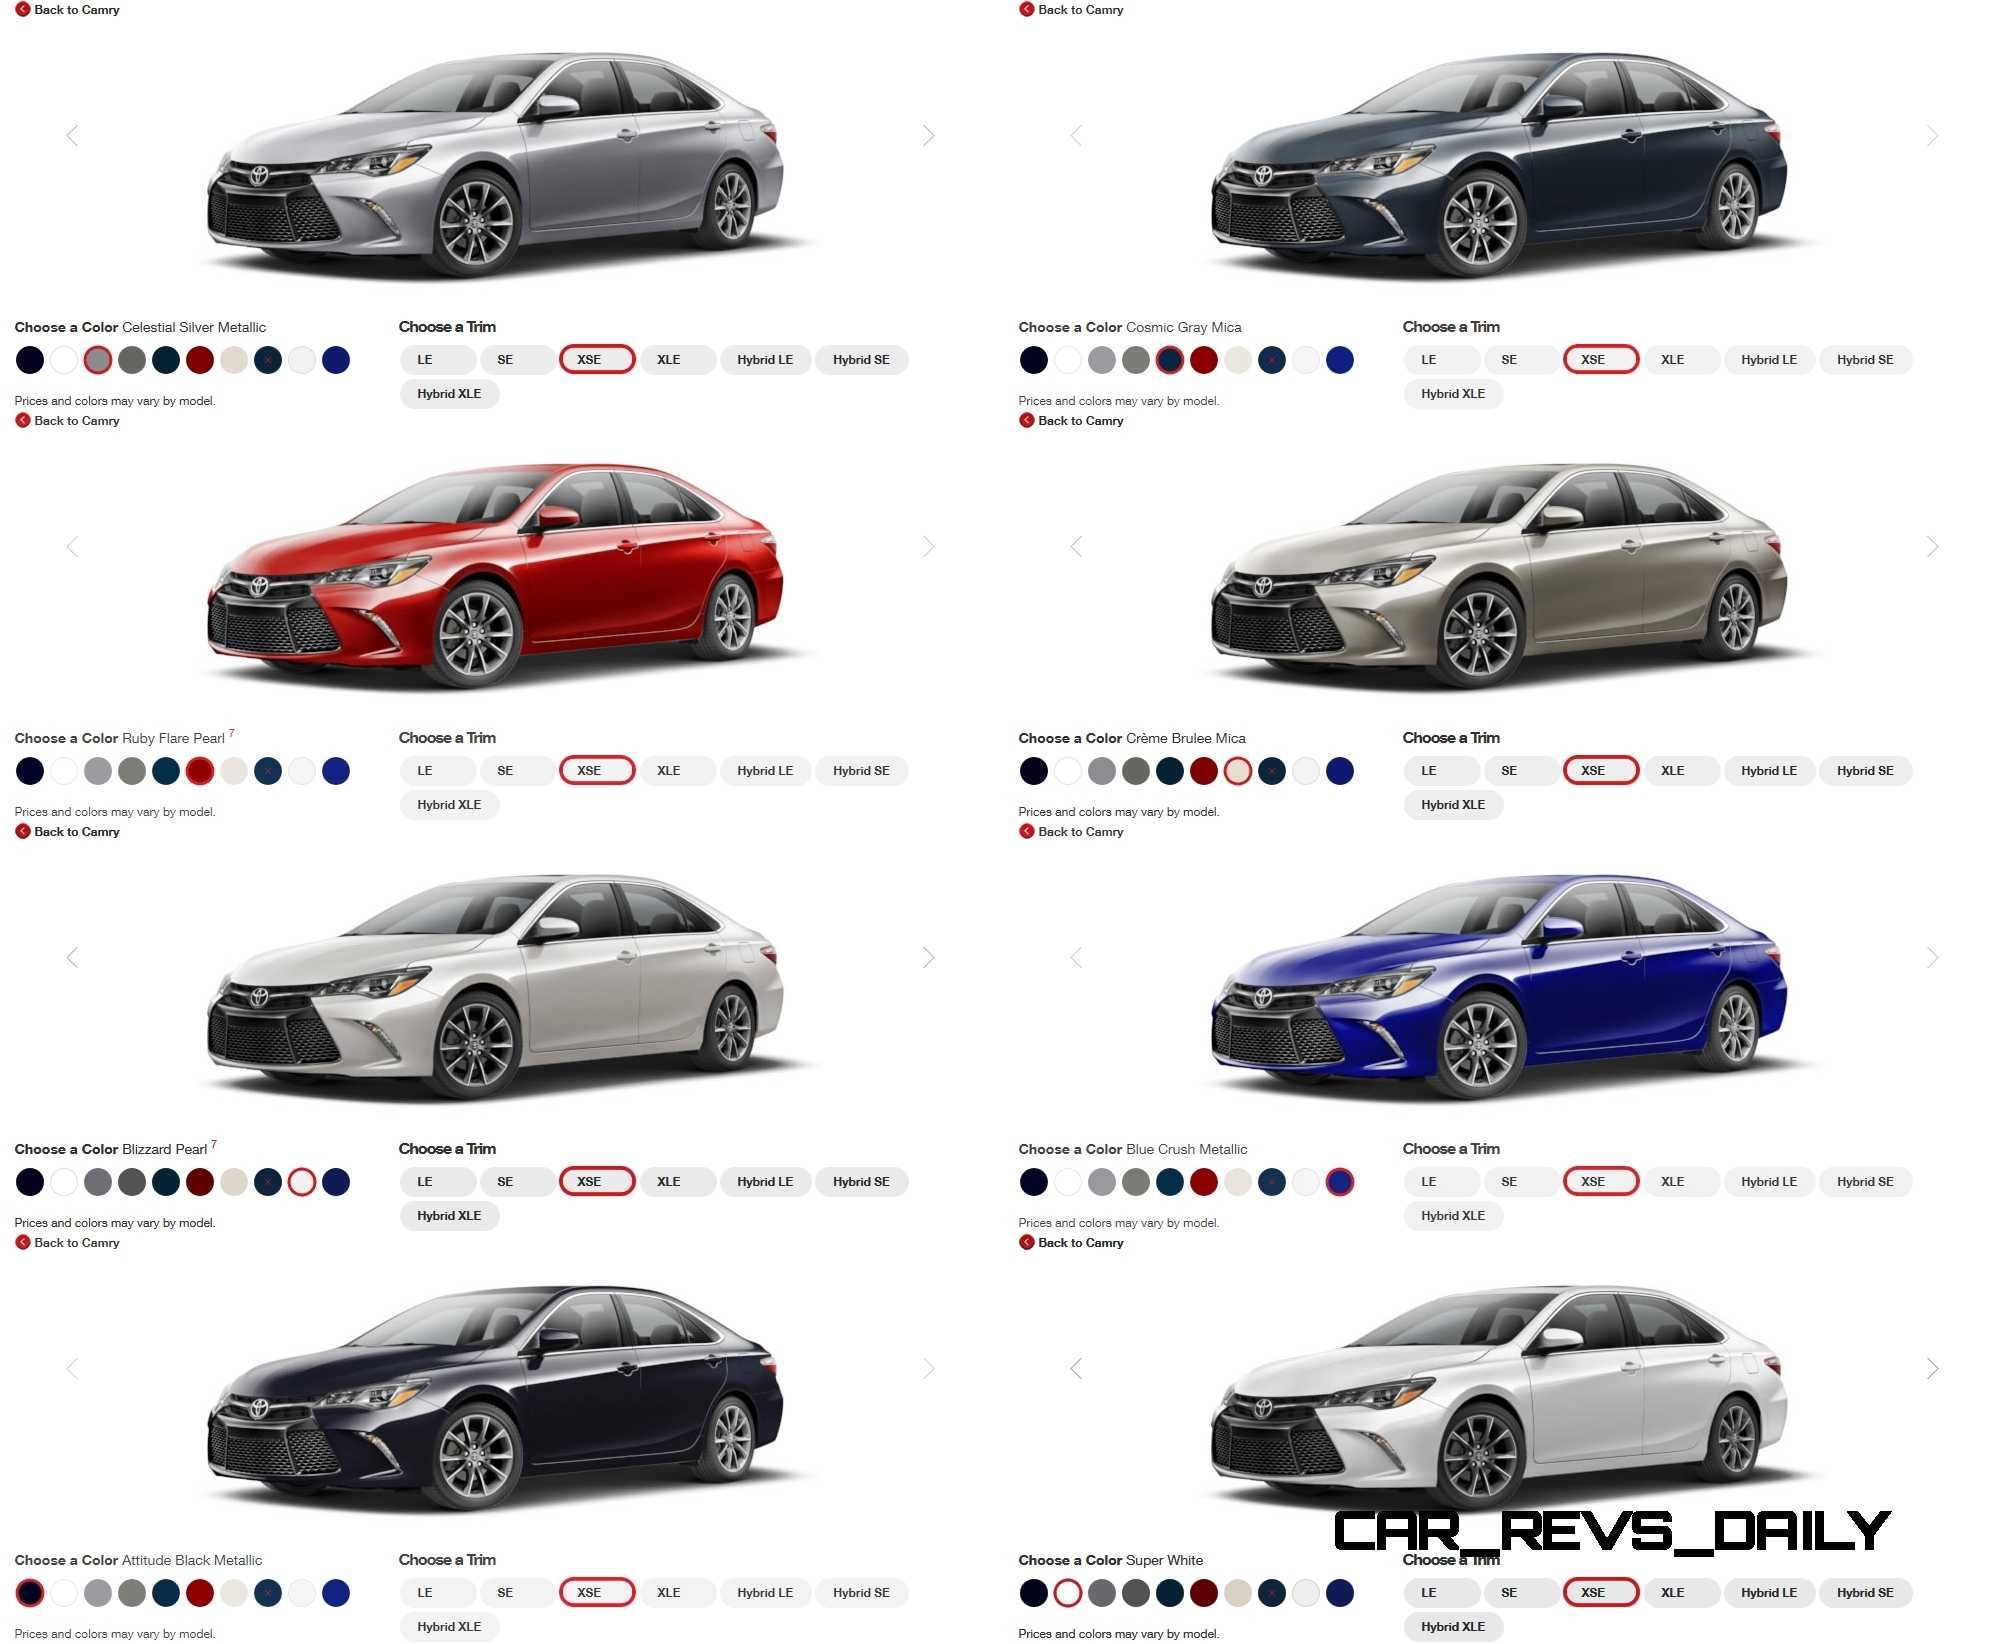 2017 Toyota Camry Colors And Trims Visual Ers Guide Hot Car